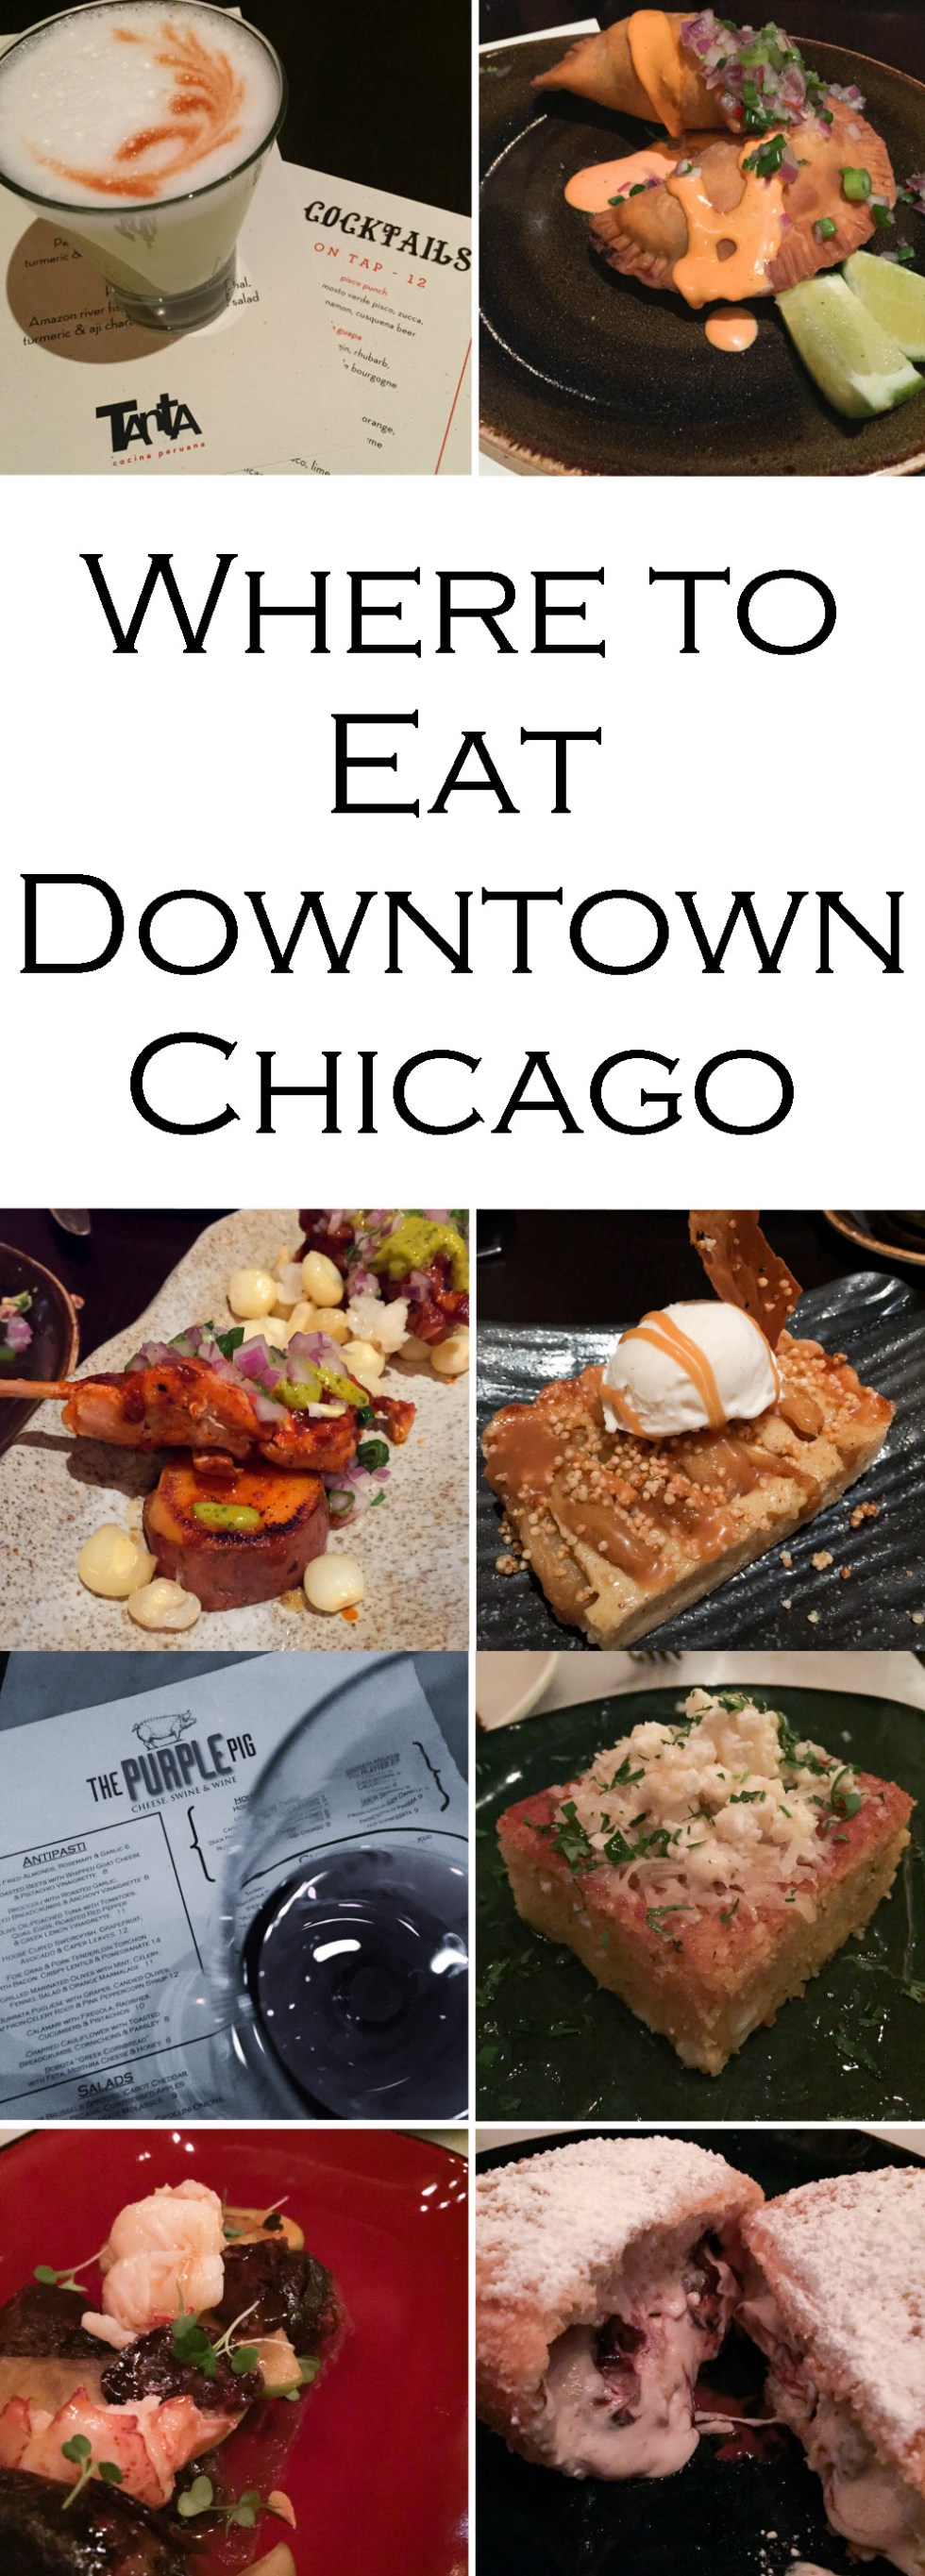 Where to Eat in Downtown Chicago Guide